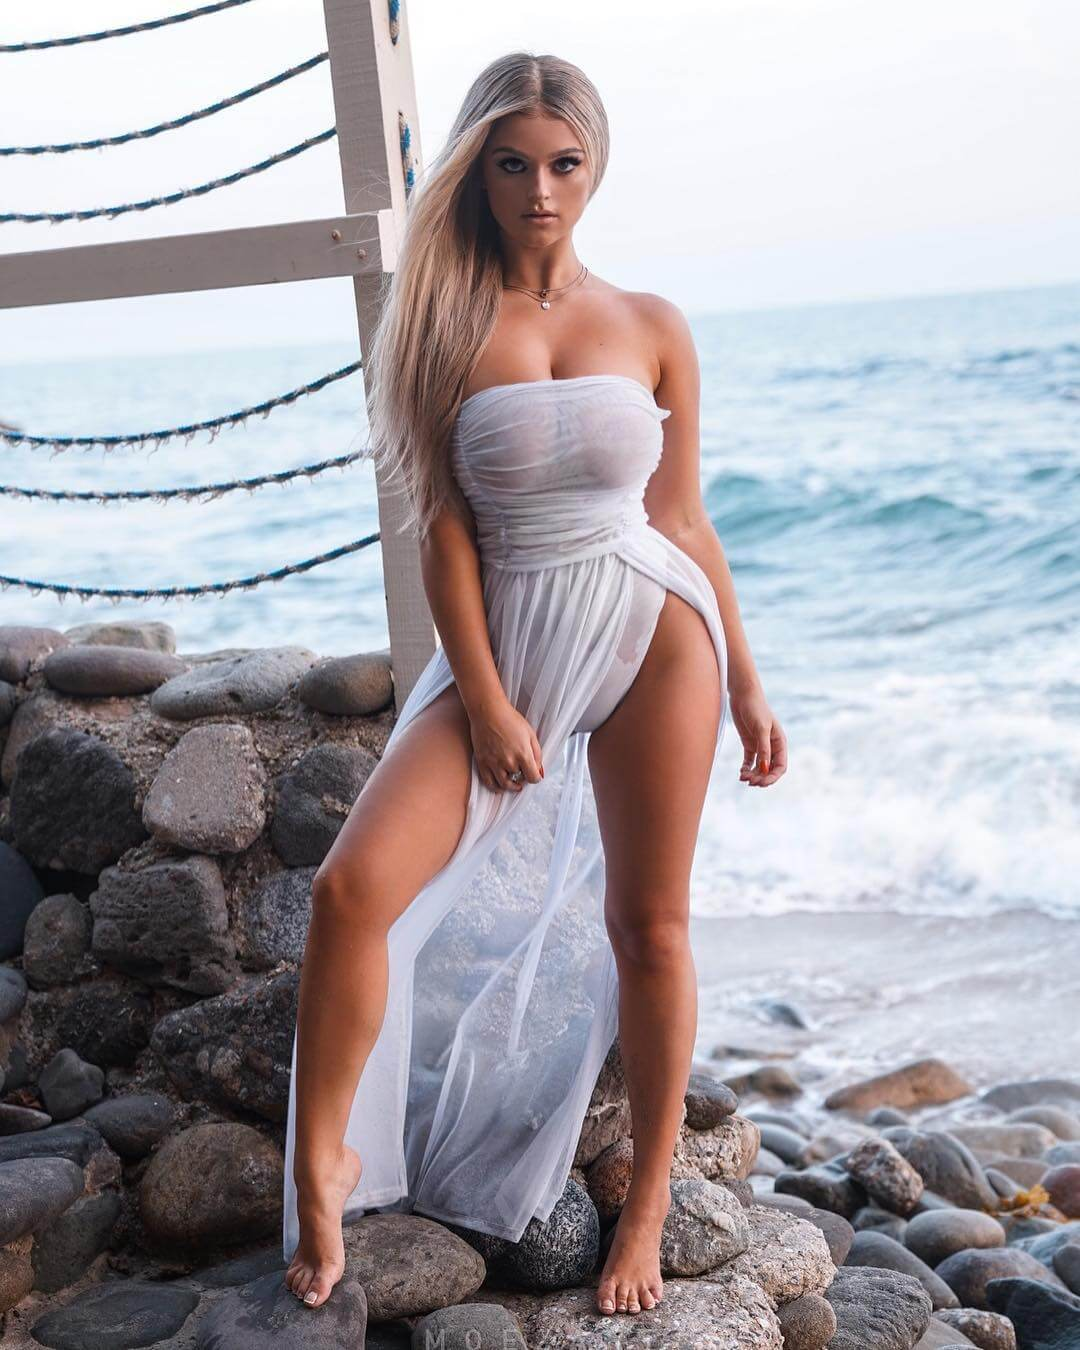 49 hot photos of Jamie Lee Thornton that are absolutely